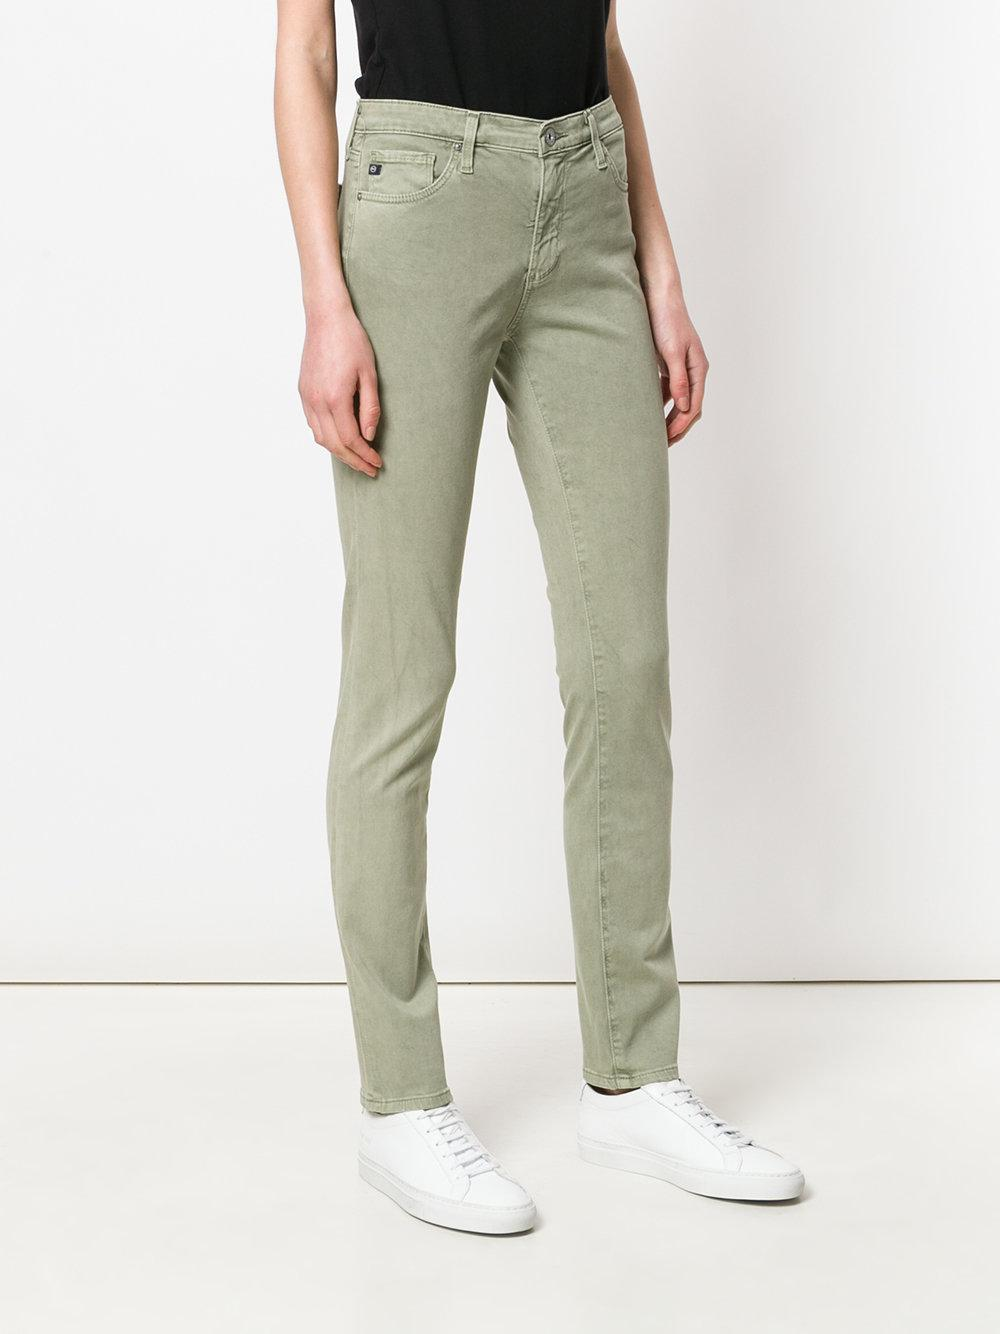 regular slim-fit jeans - Green AG - Adriano Goldschmied Sale Affordable tiJzxv